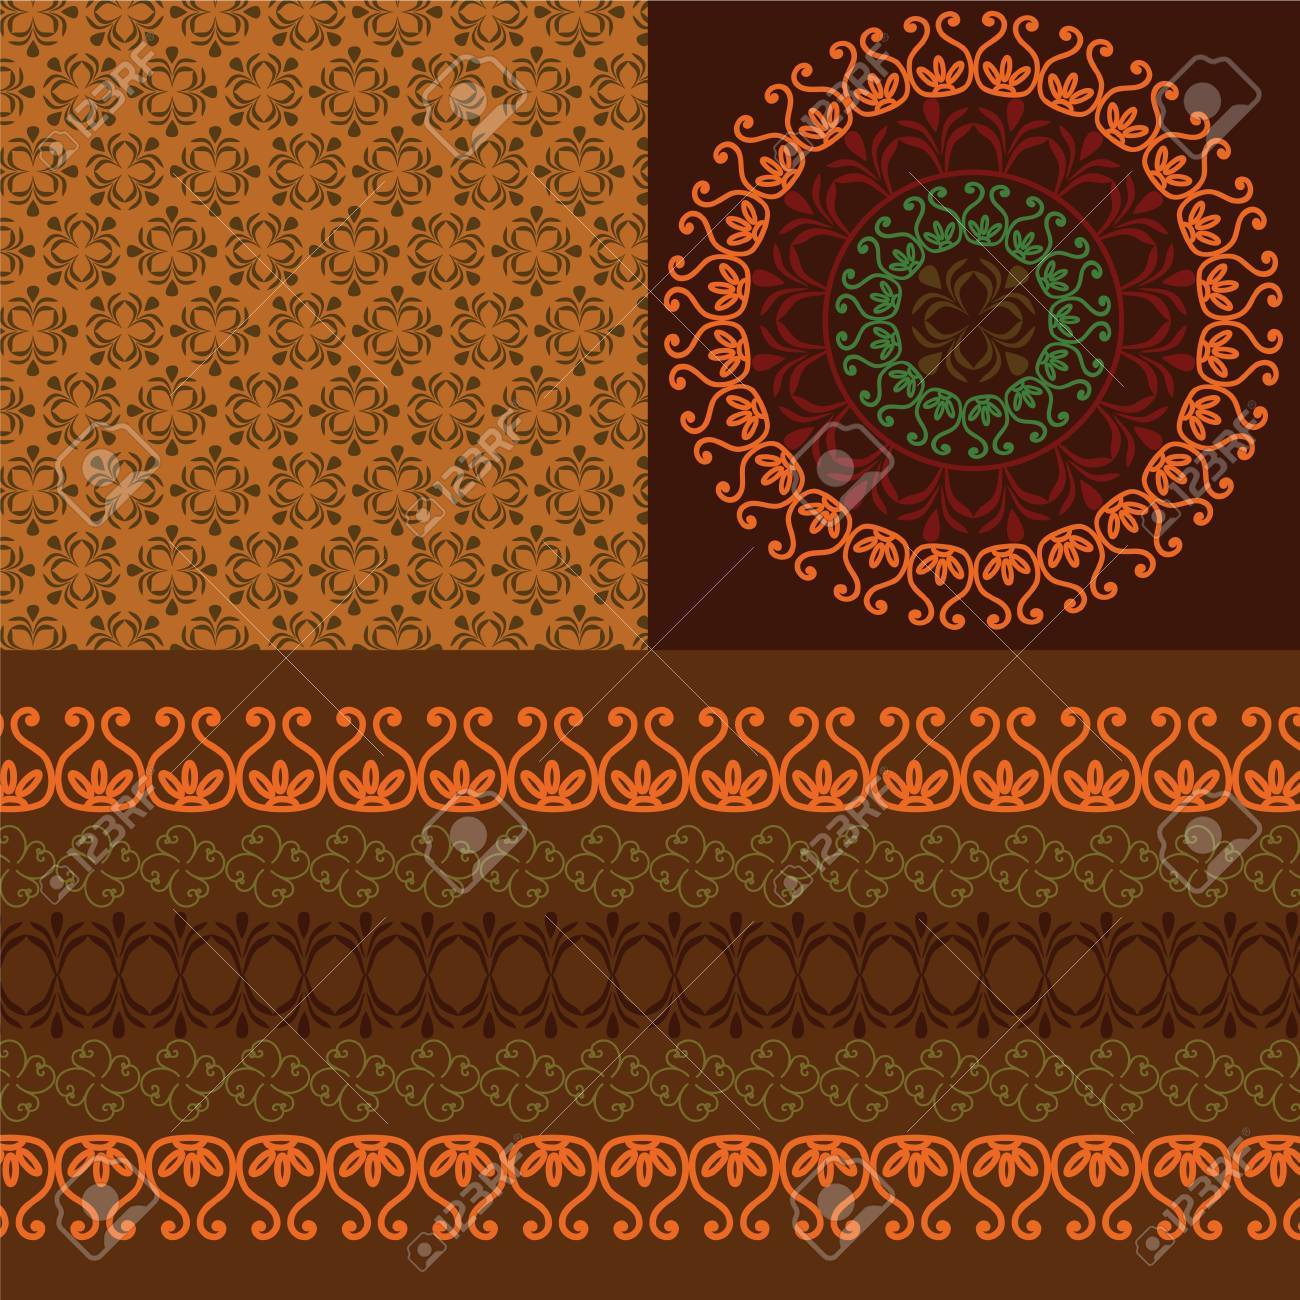 Colourful Henna Banners & borders Indian henna art inspired -very detailed and easily editable Stock Vector - 11095154